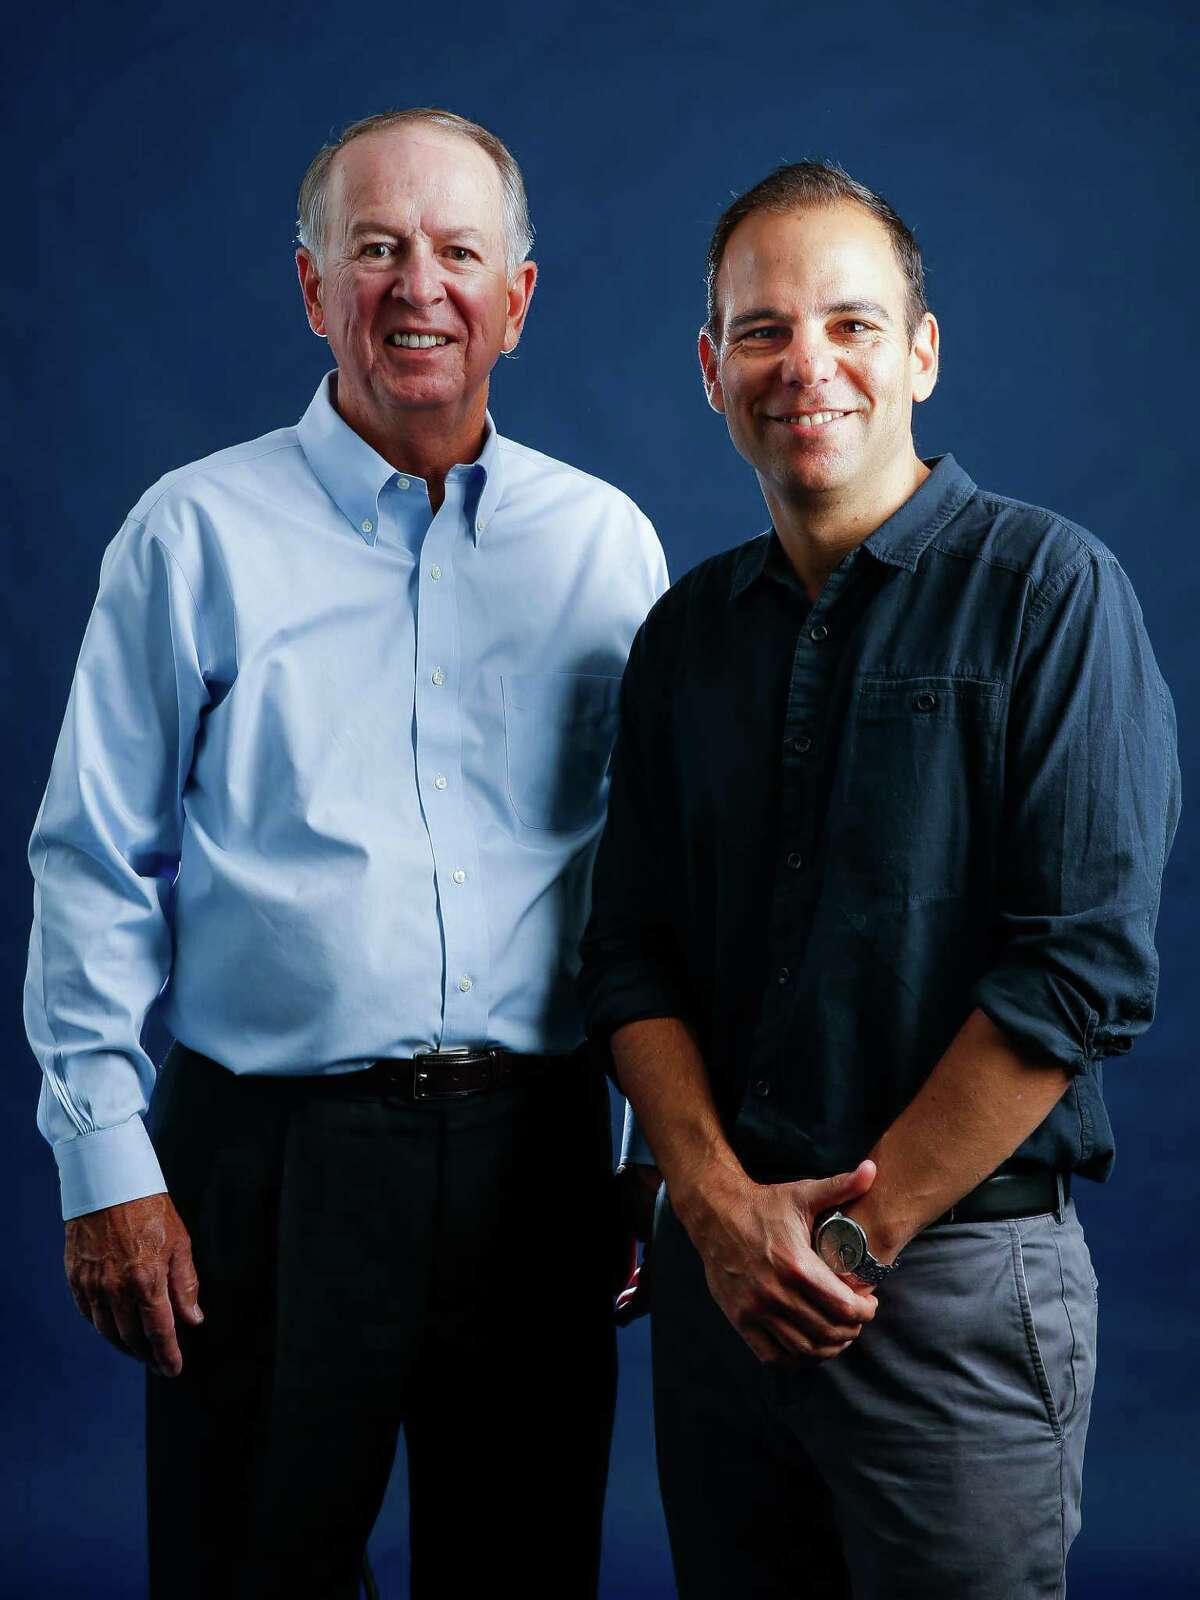 Silicon Cowboys director Jason Cohen, right, who made a film about the beginnings, rise and fall of Compaq, the Houston-based computer company, stands for a portrait with Compaq co-founder Rod Canion Tuesday, Sept. 13, 2016 in Houston. ( Michael Ciaglo / Houston Chronicle )